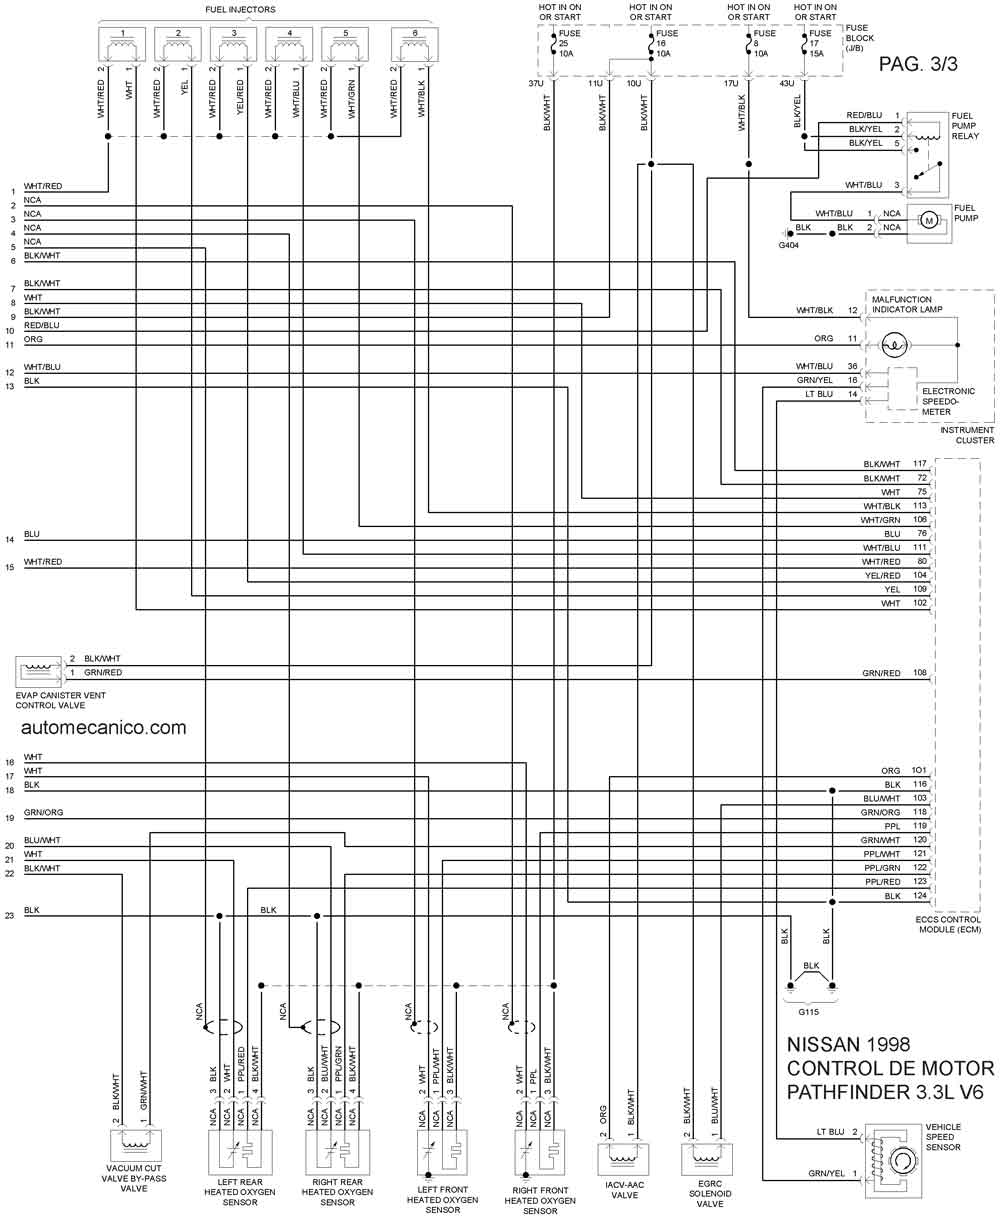 Traxxas 3 Diagrama Del Motor Auto Electrical Wiring Diagram 1985 Nissan 300zx Fuel Pump Relay 1998